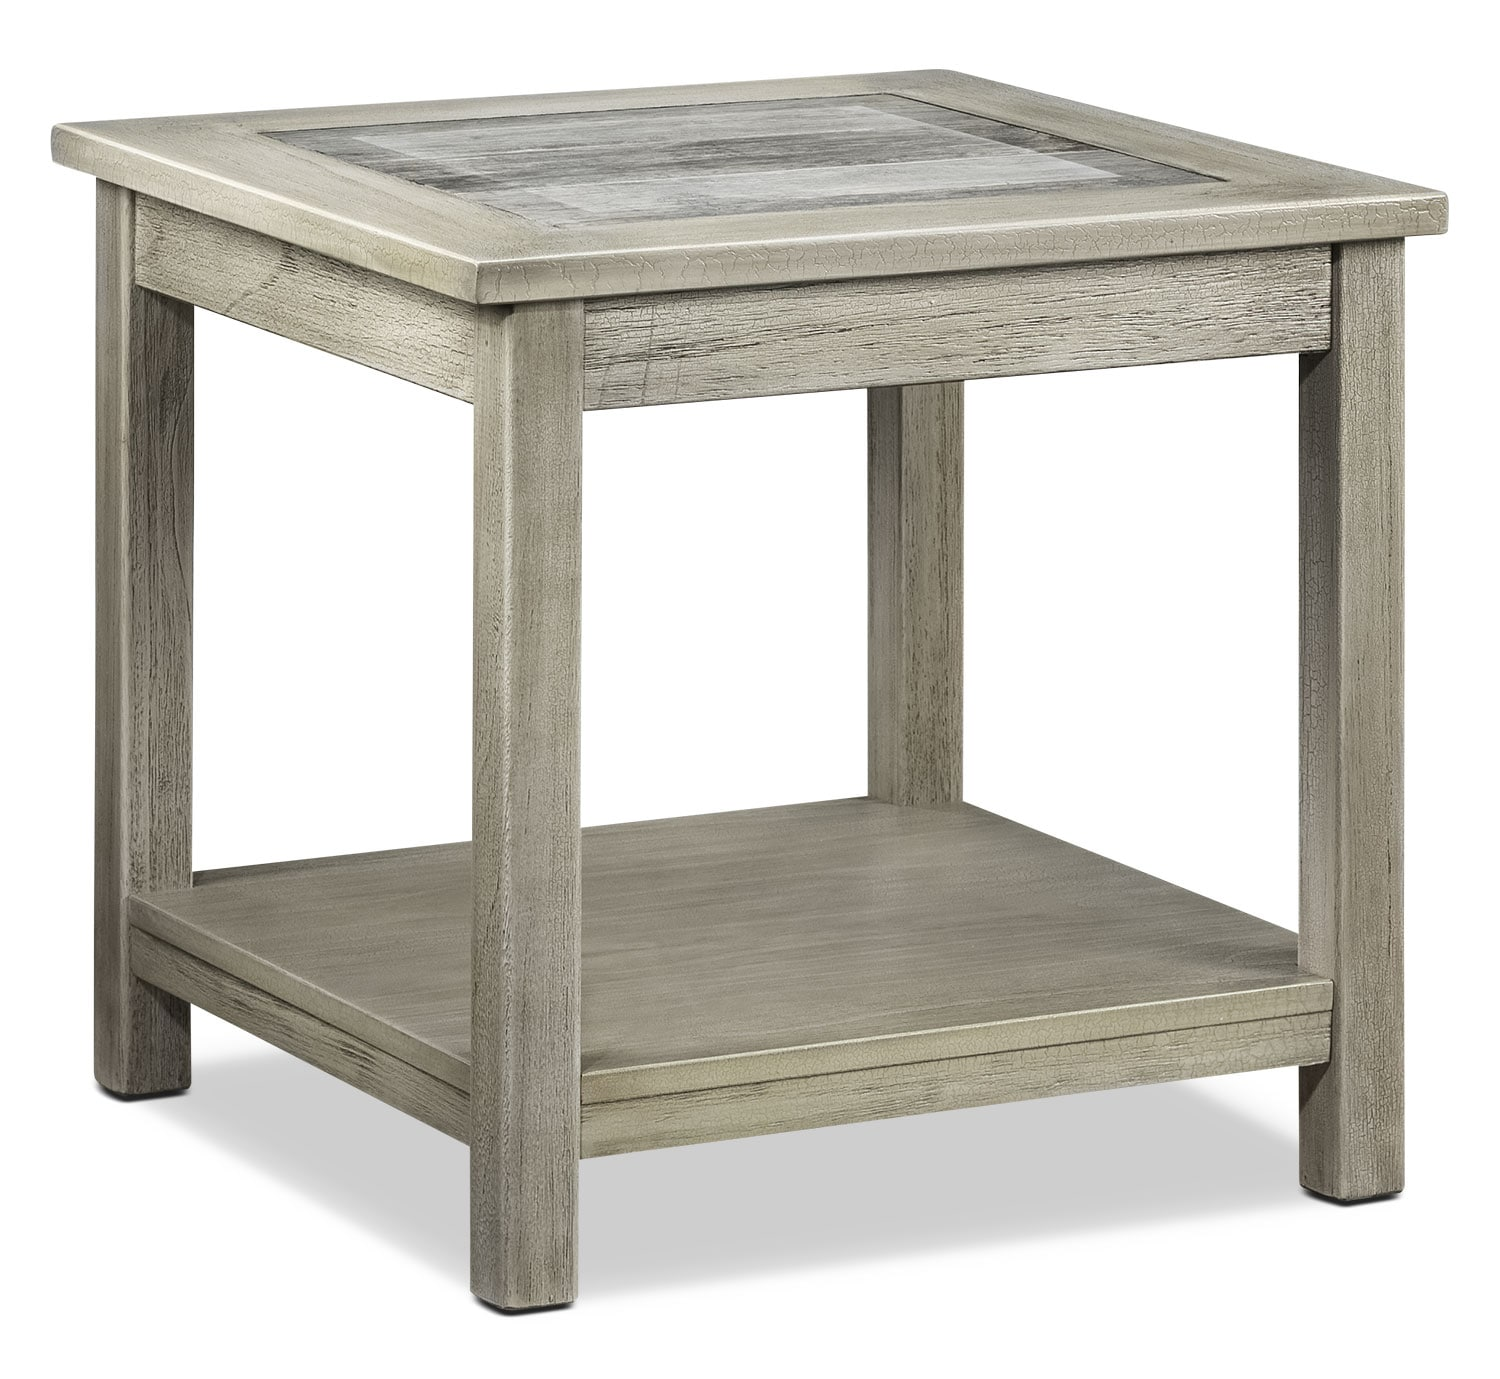 Thomas End Table - Natural Beige